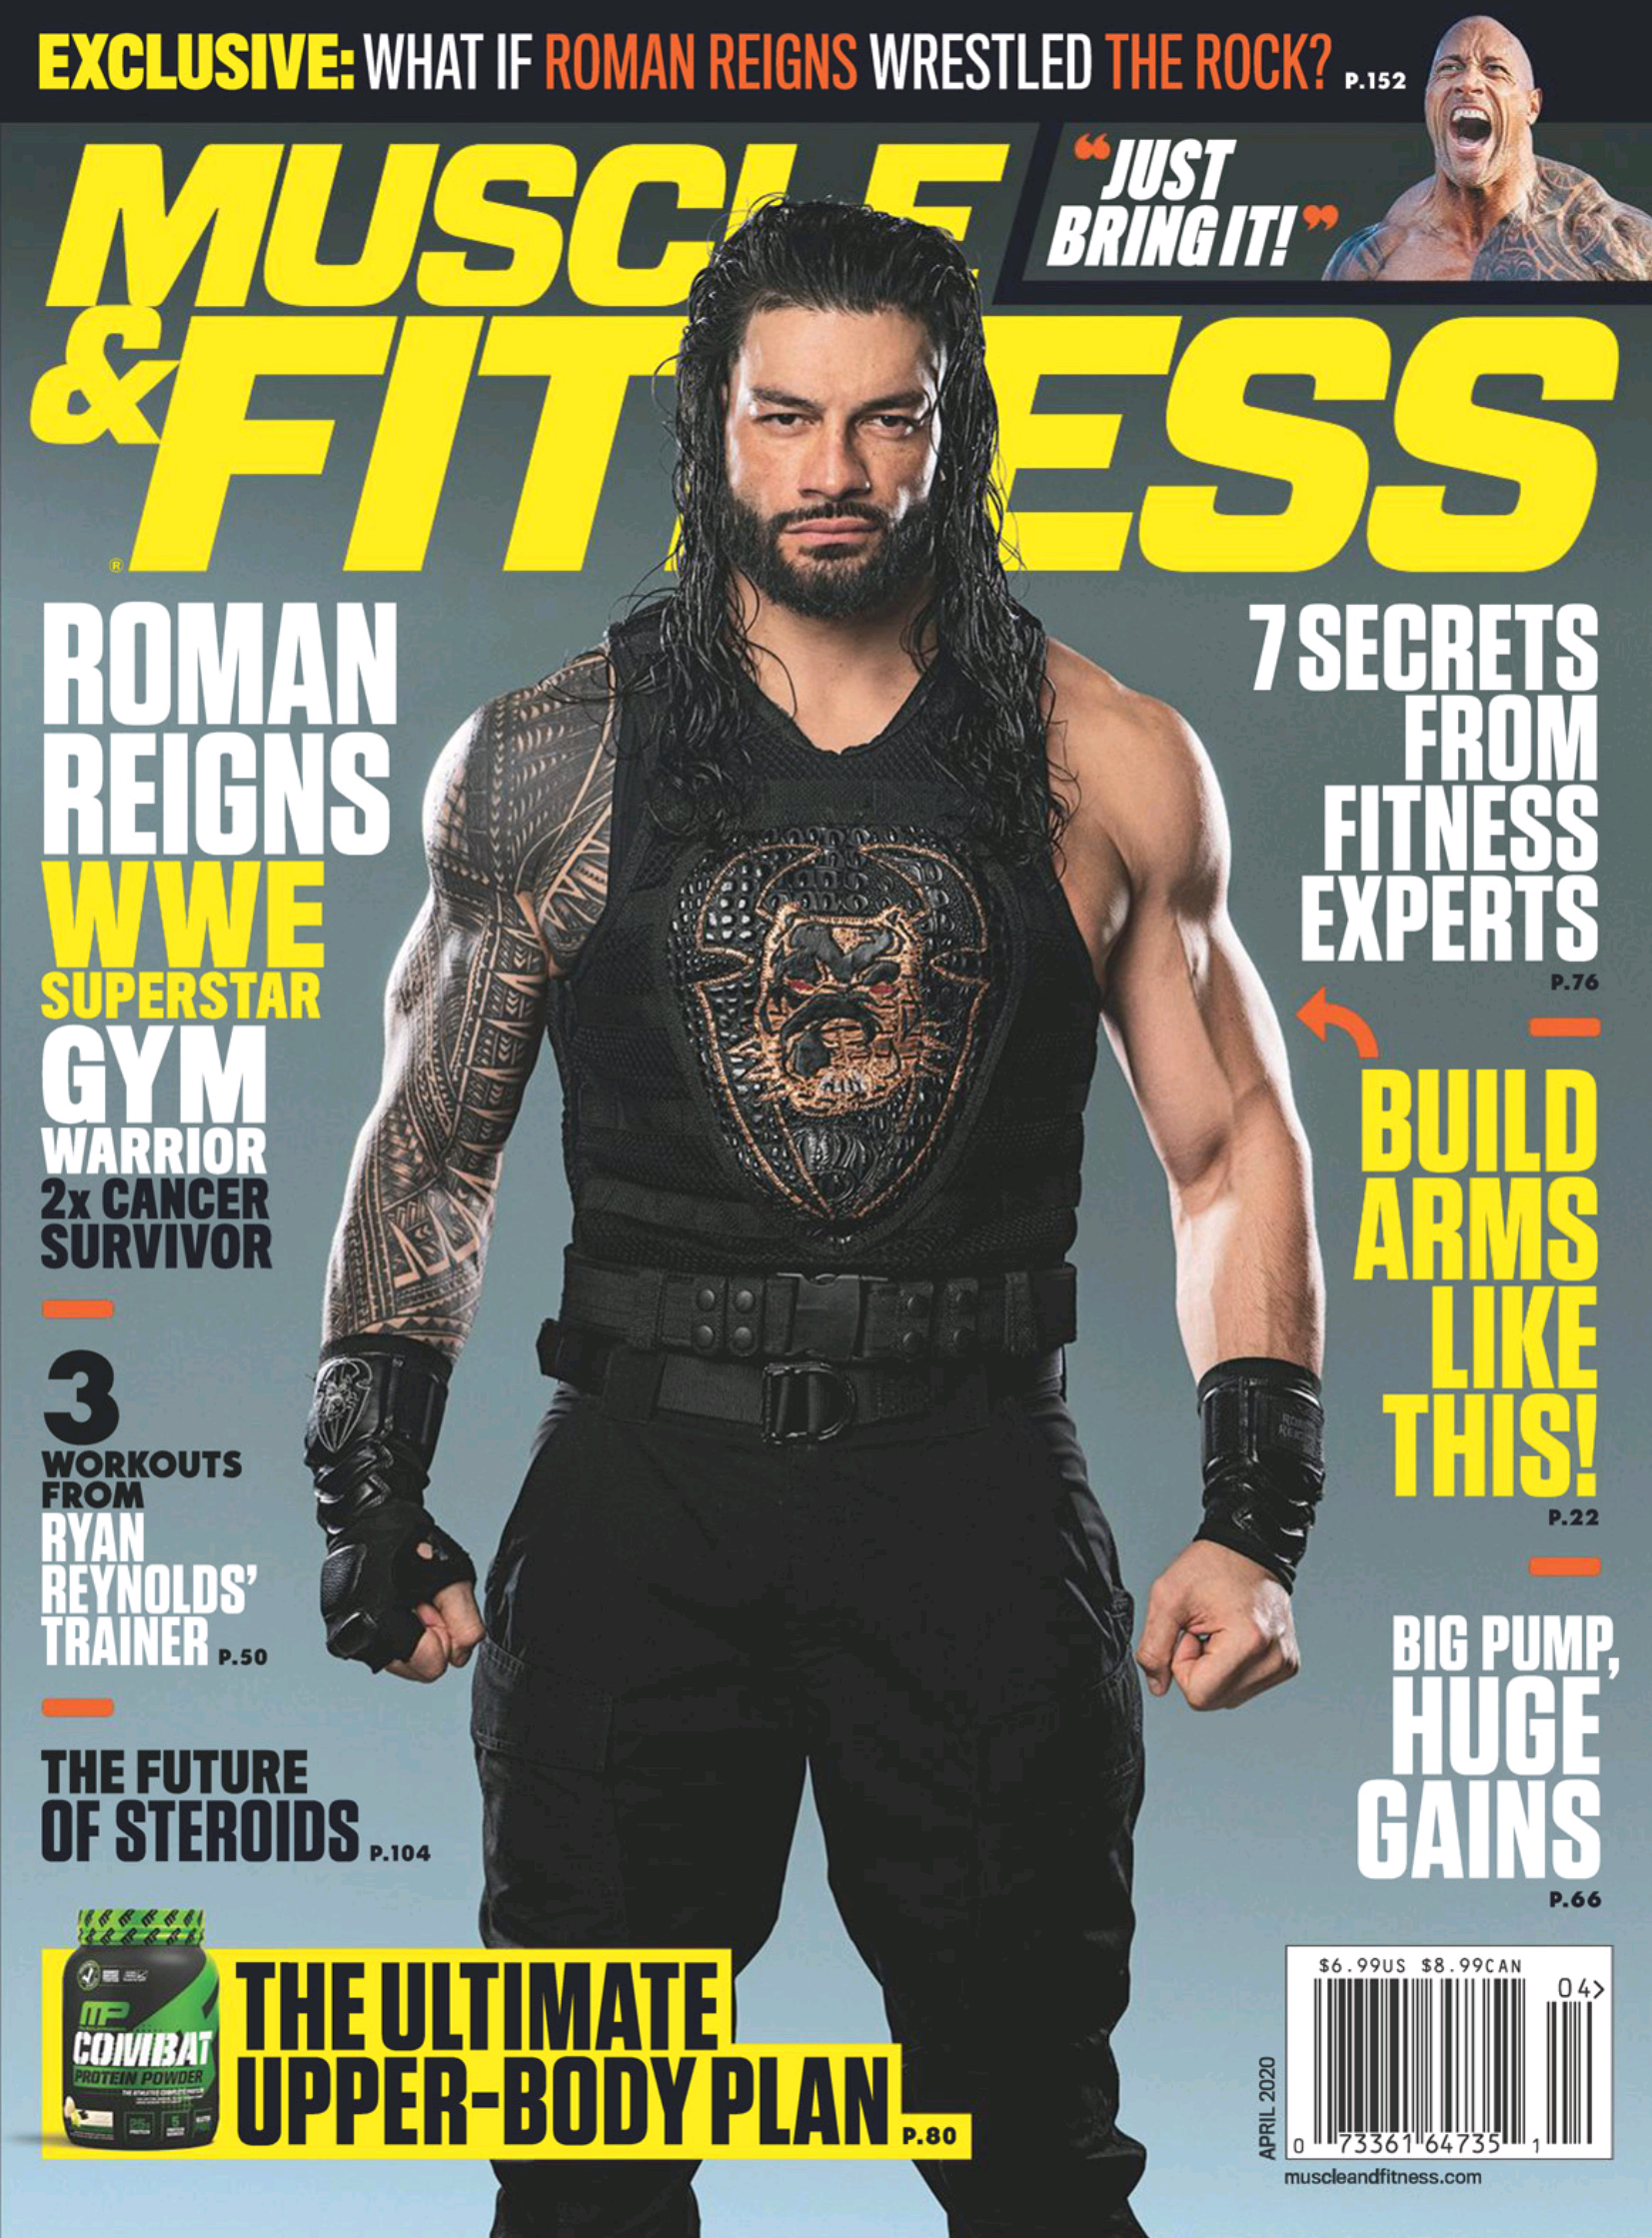 20200401_Muscle_&_Fitness Payhip in 2020 Roman